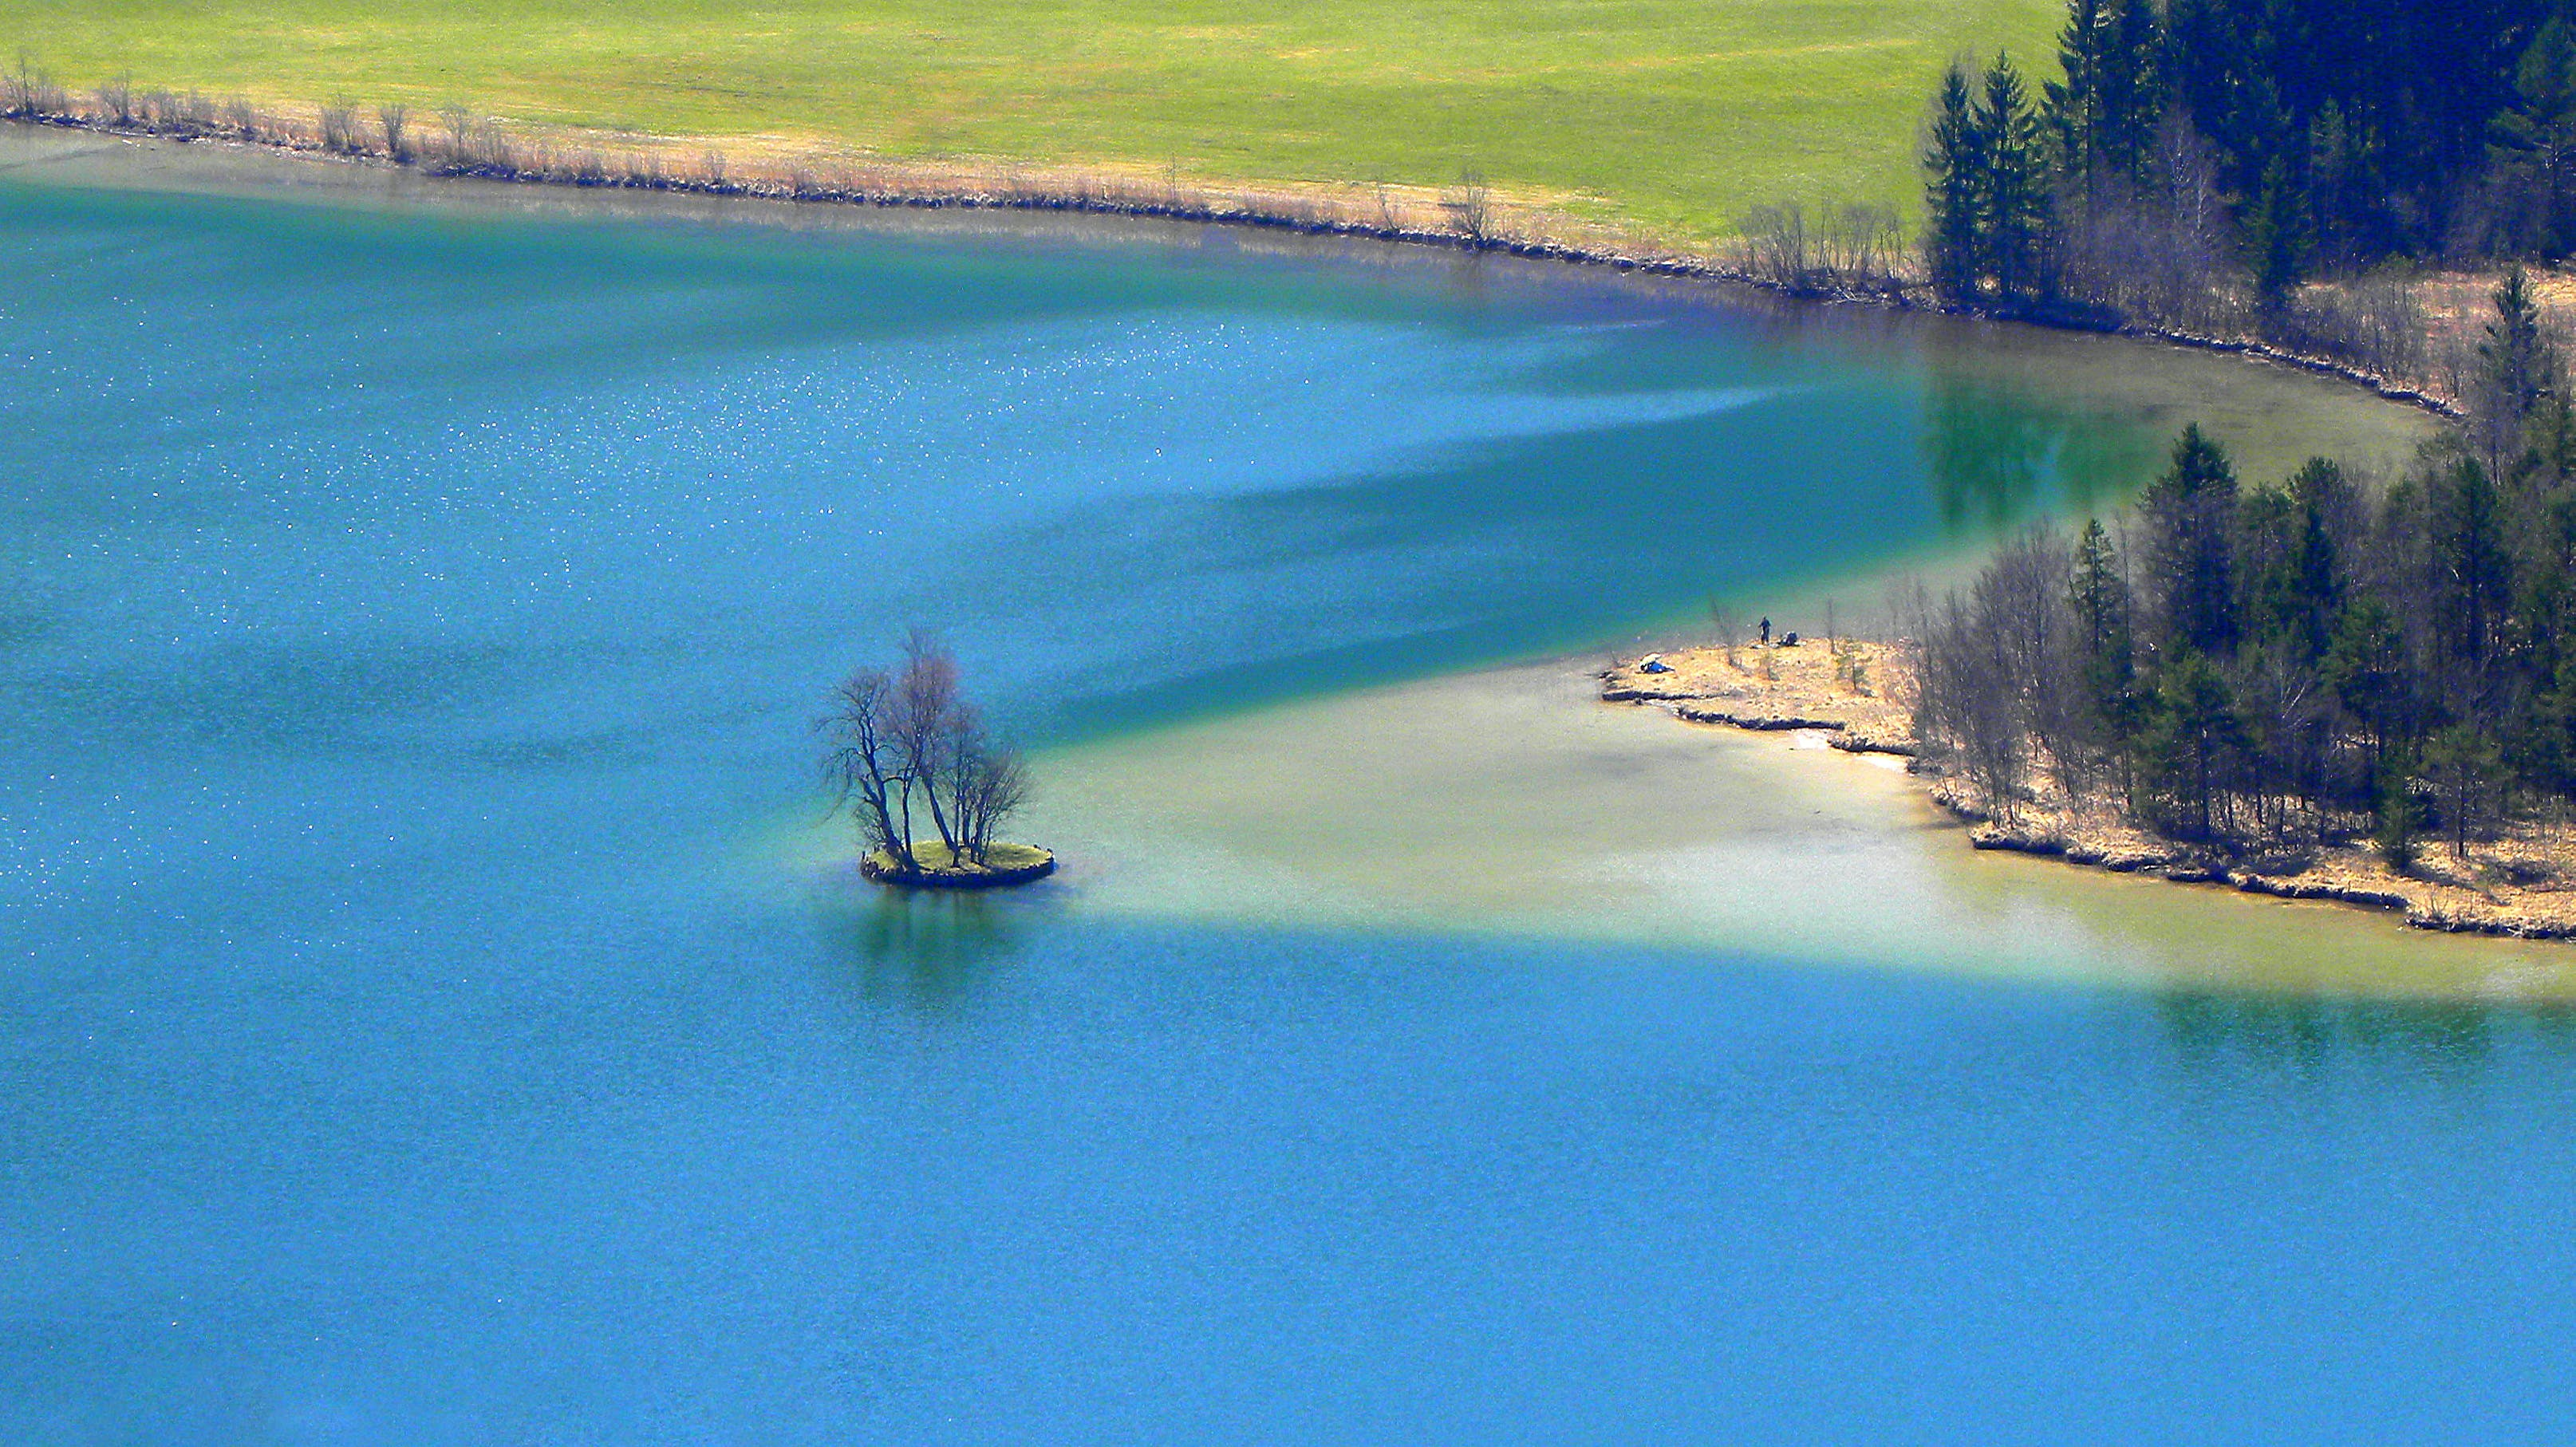 Areal View Of Body Of Water And Trees